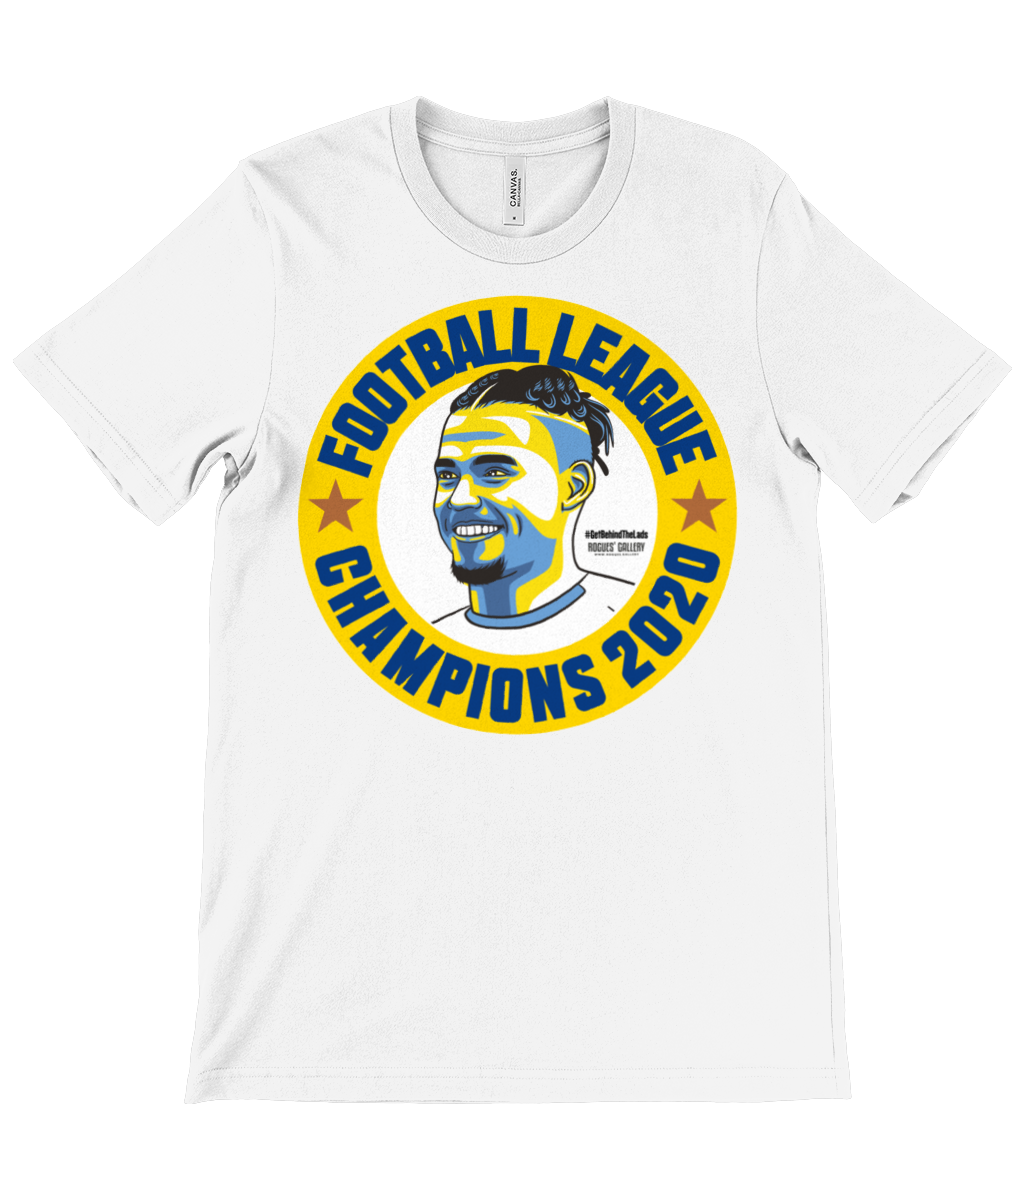 Kalvin Phillips Champions Leeds United 2020 unisex t-shirt white